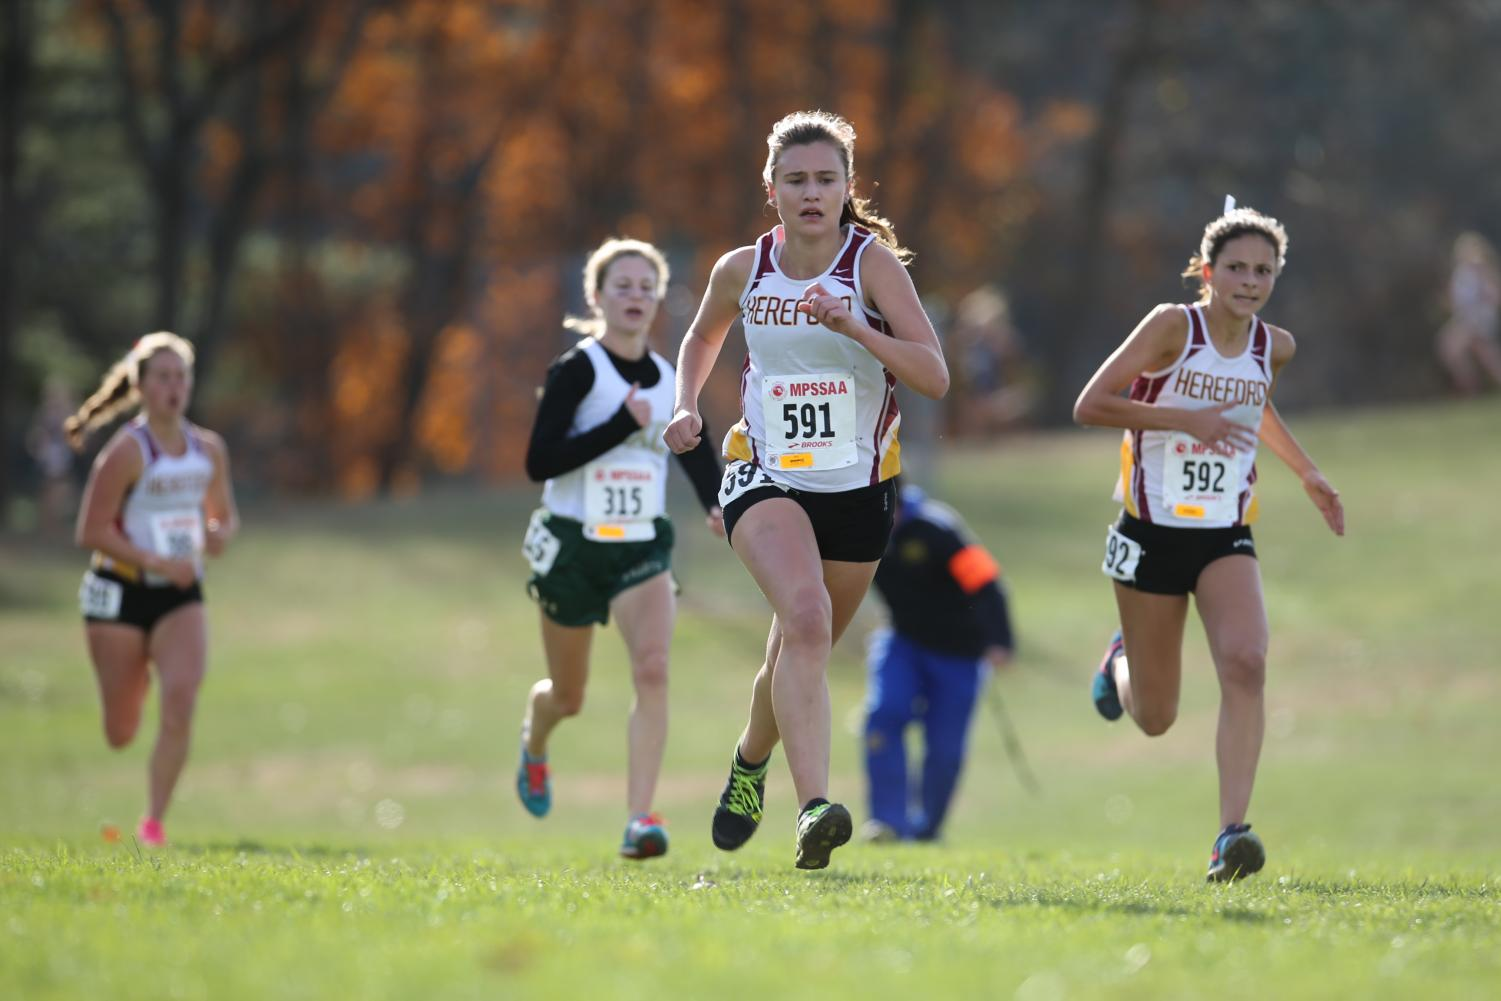 Burkoski finished the 2A Cross Country States ace in nineteenth place which helped her team take first place overall.